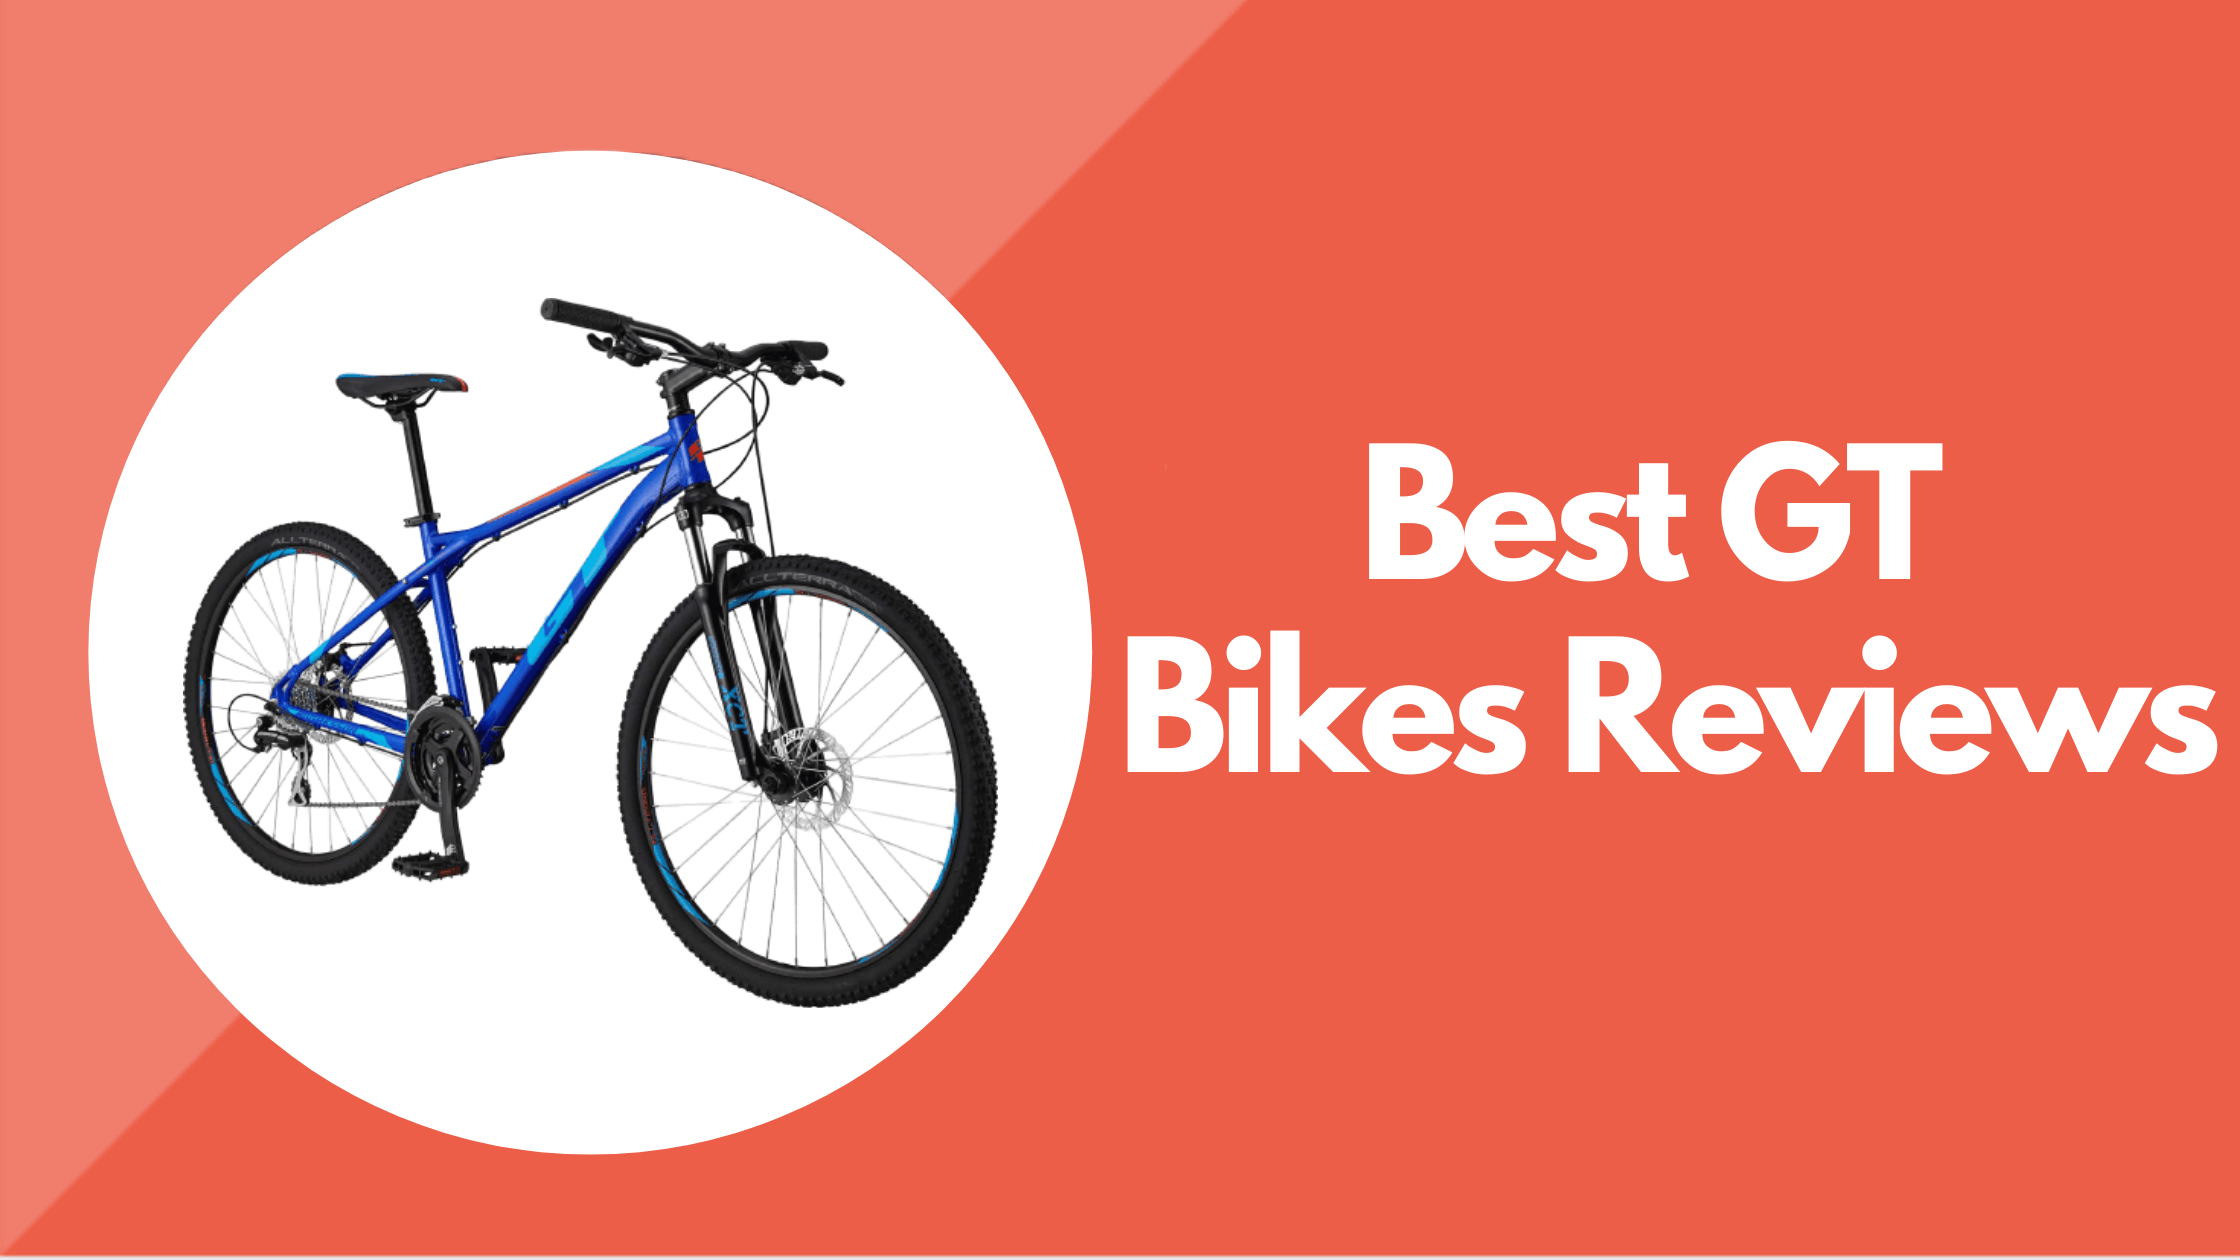 Best GT Bikes Reviews